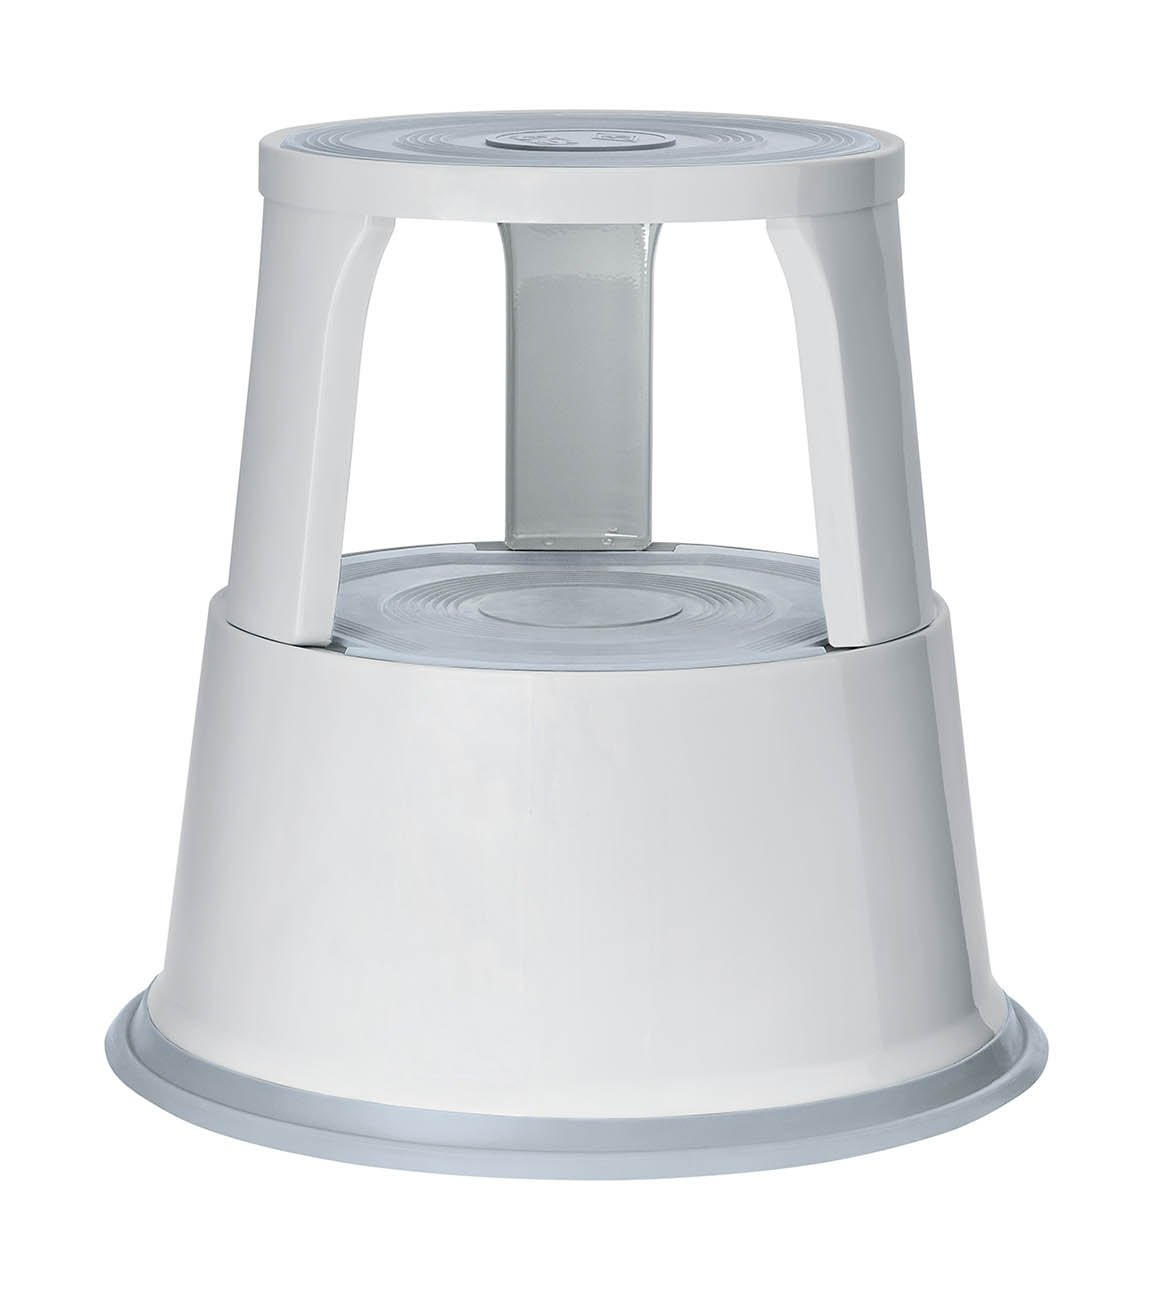 Q-Connect Metal Step Stool Light Grey Werner Dorsch 212137